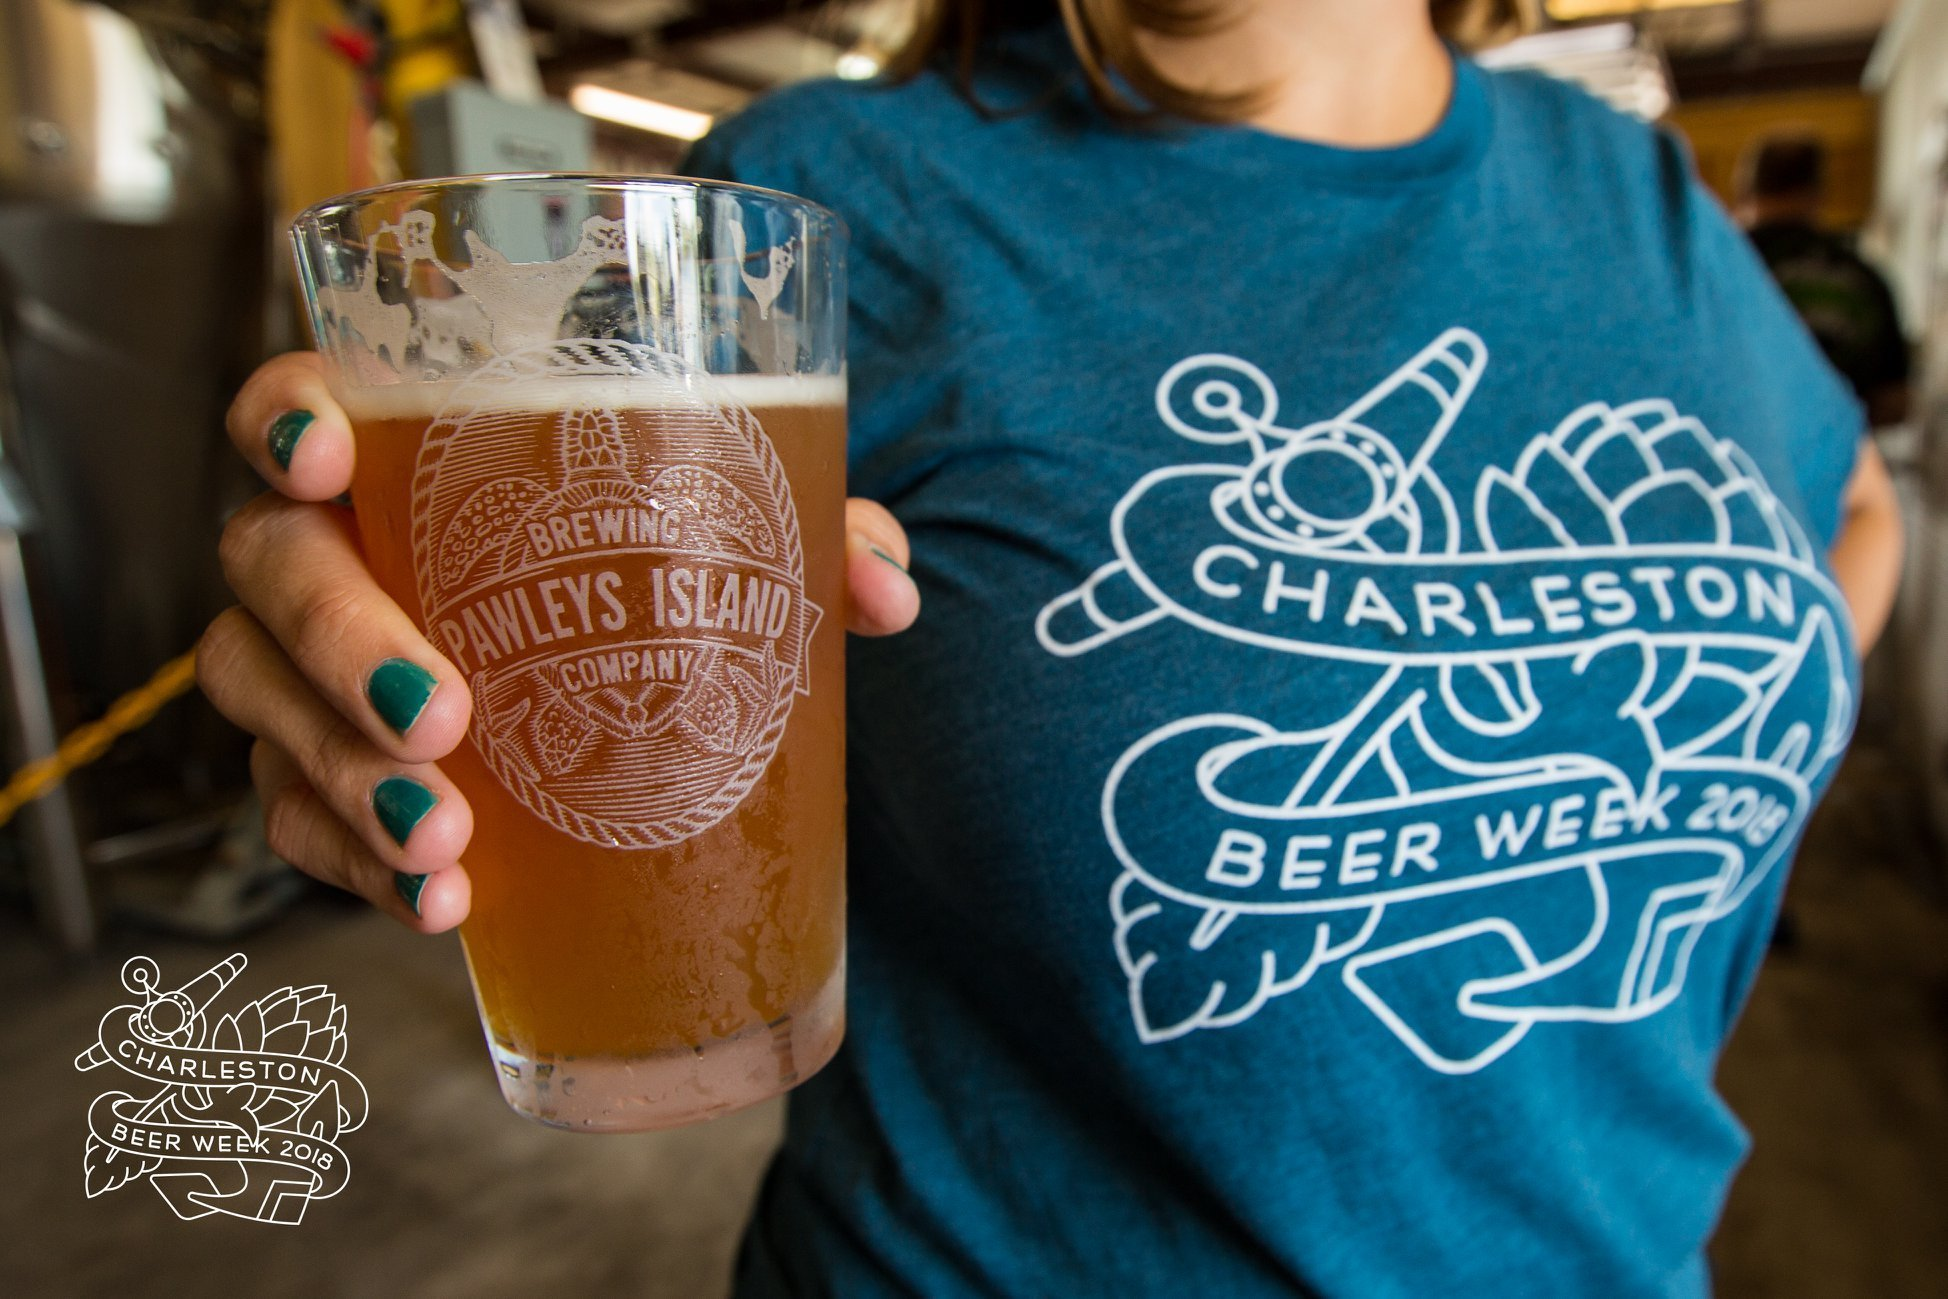 Pawleys Island Brewing Company Pint Glass at the 2018 CHS Beer Week